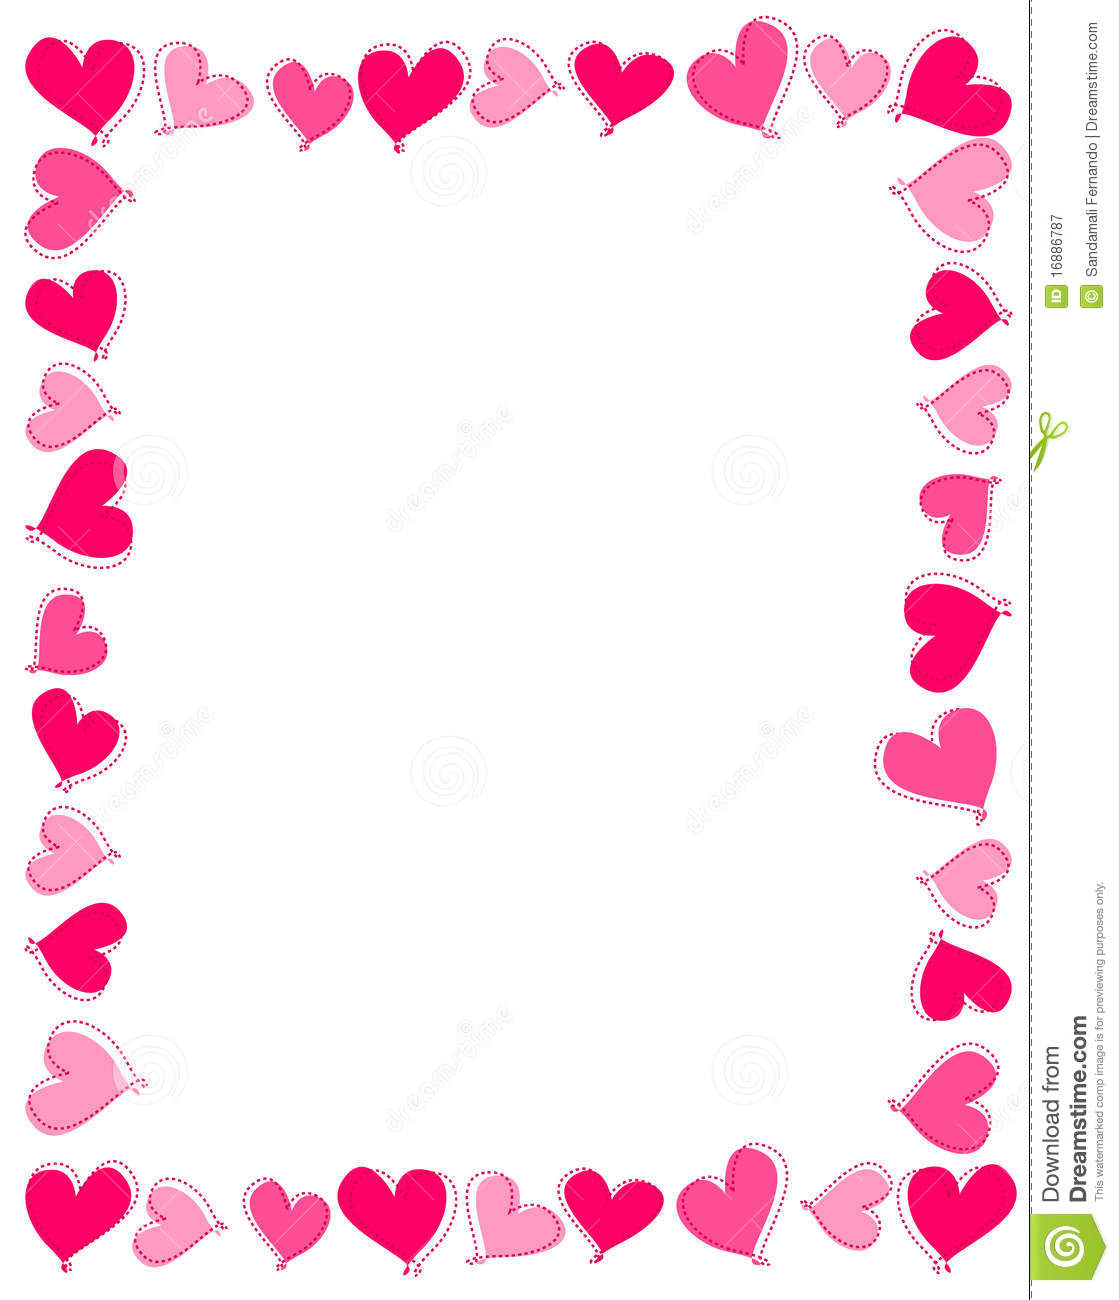 Pink Hearts Border Royalty Free Stock Photography   Image  16886787